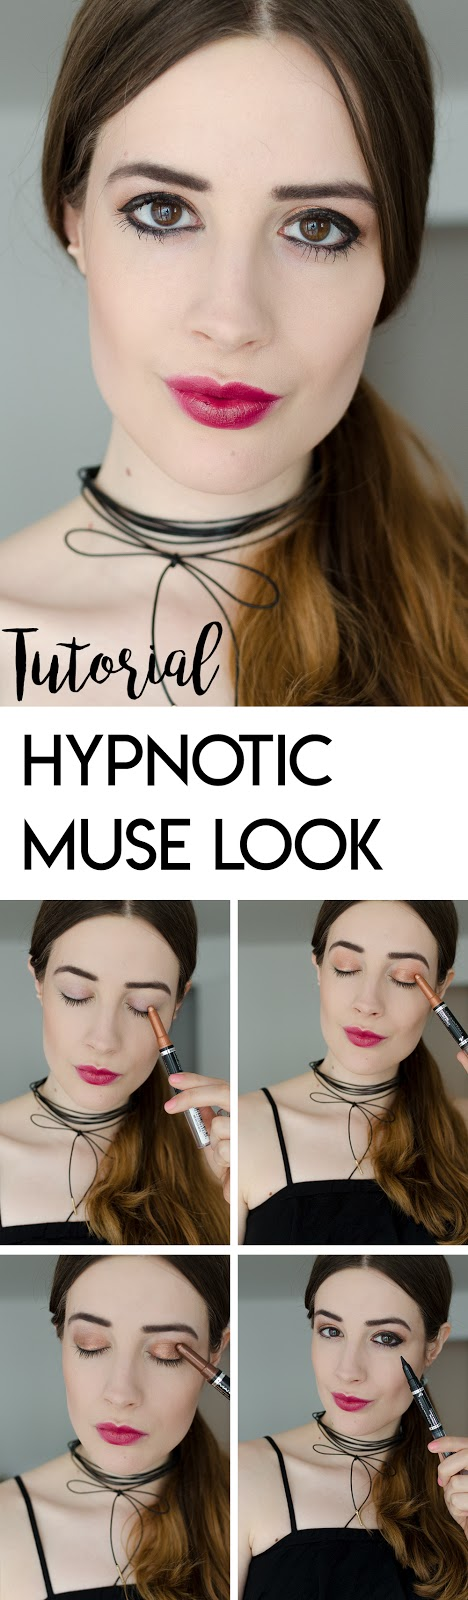 Beautyblog-Manhattan-Tutorial-Hypnotic Muse Look-Deutschland-Influencer-Andrea-Funk-andysparkles-Berlin